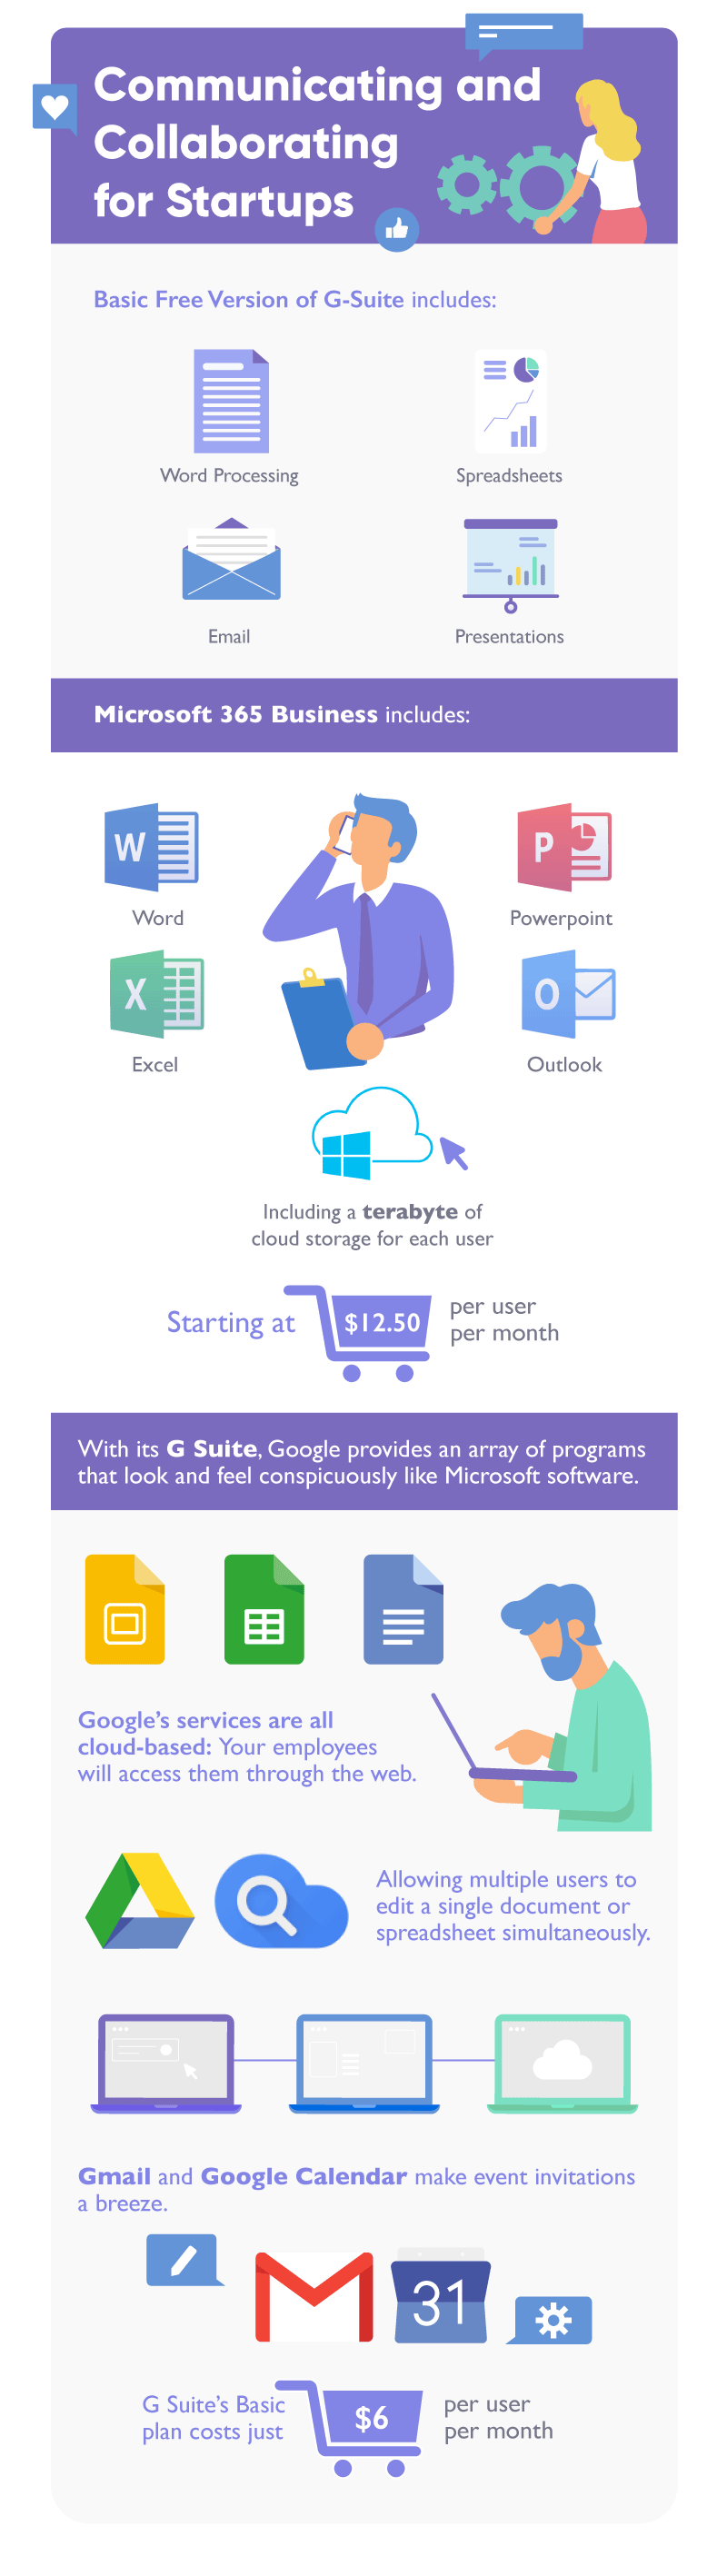 Communicating and collaborating for startups